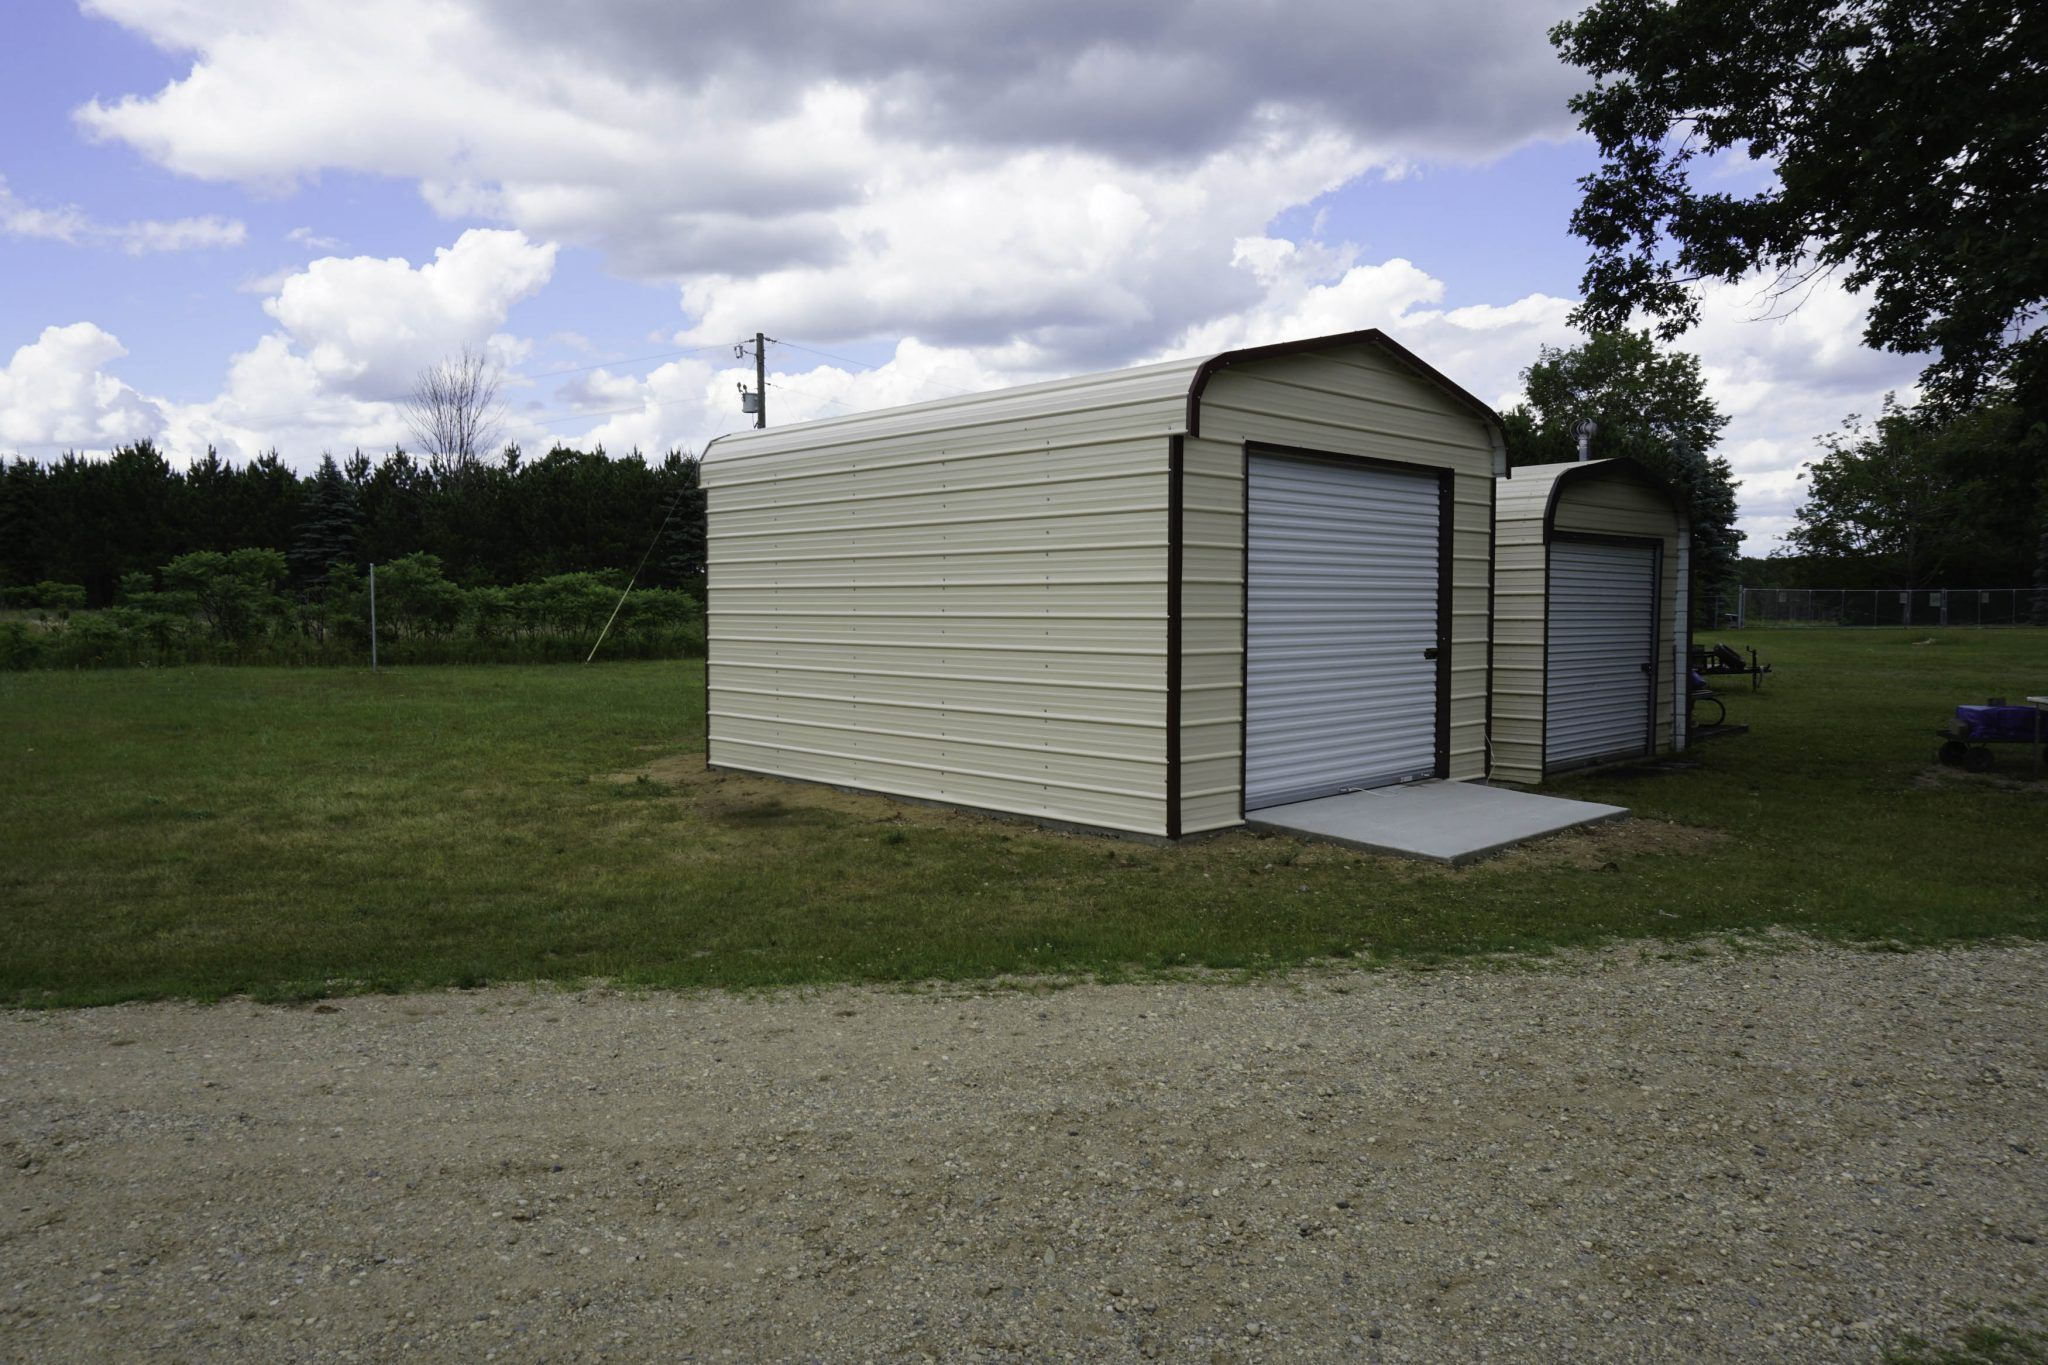 Metal Carports For Sale Midwest Steel Carports Garages More Metal Shed Roof Styles Metal Carports